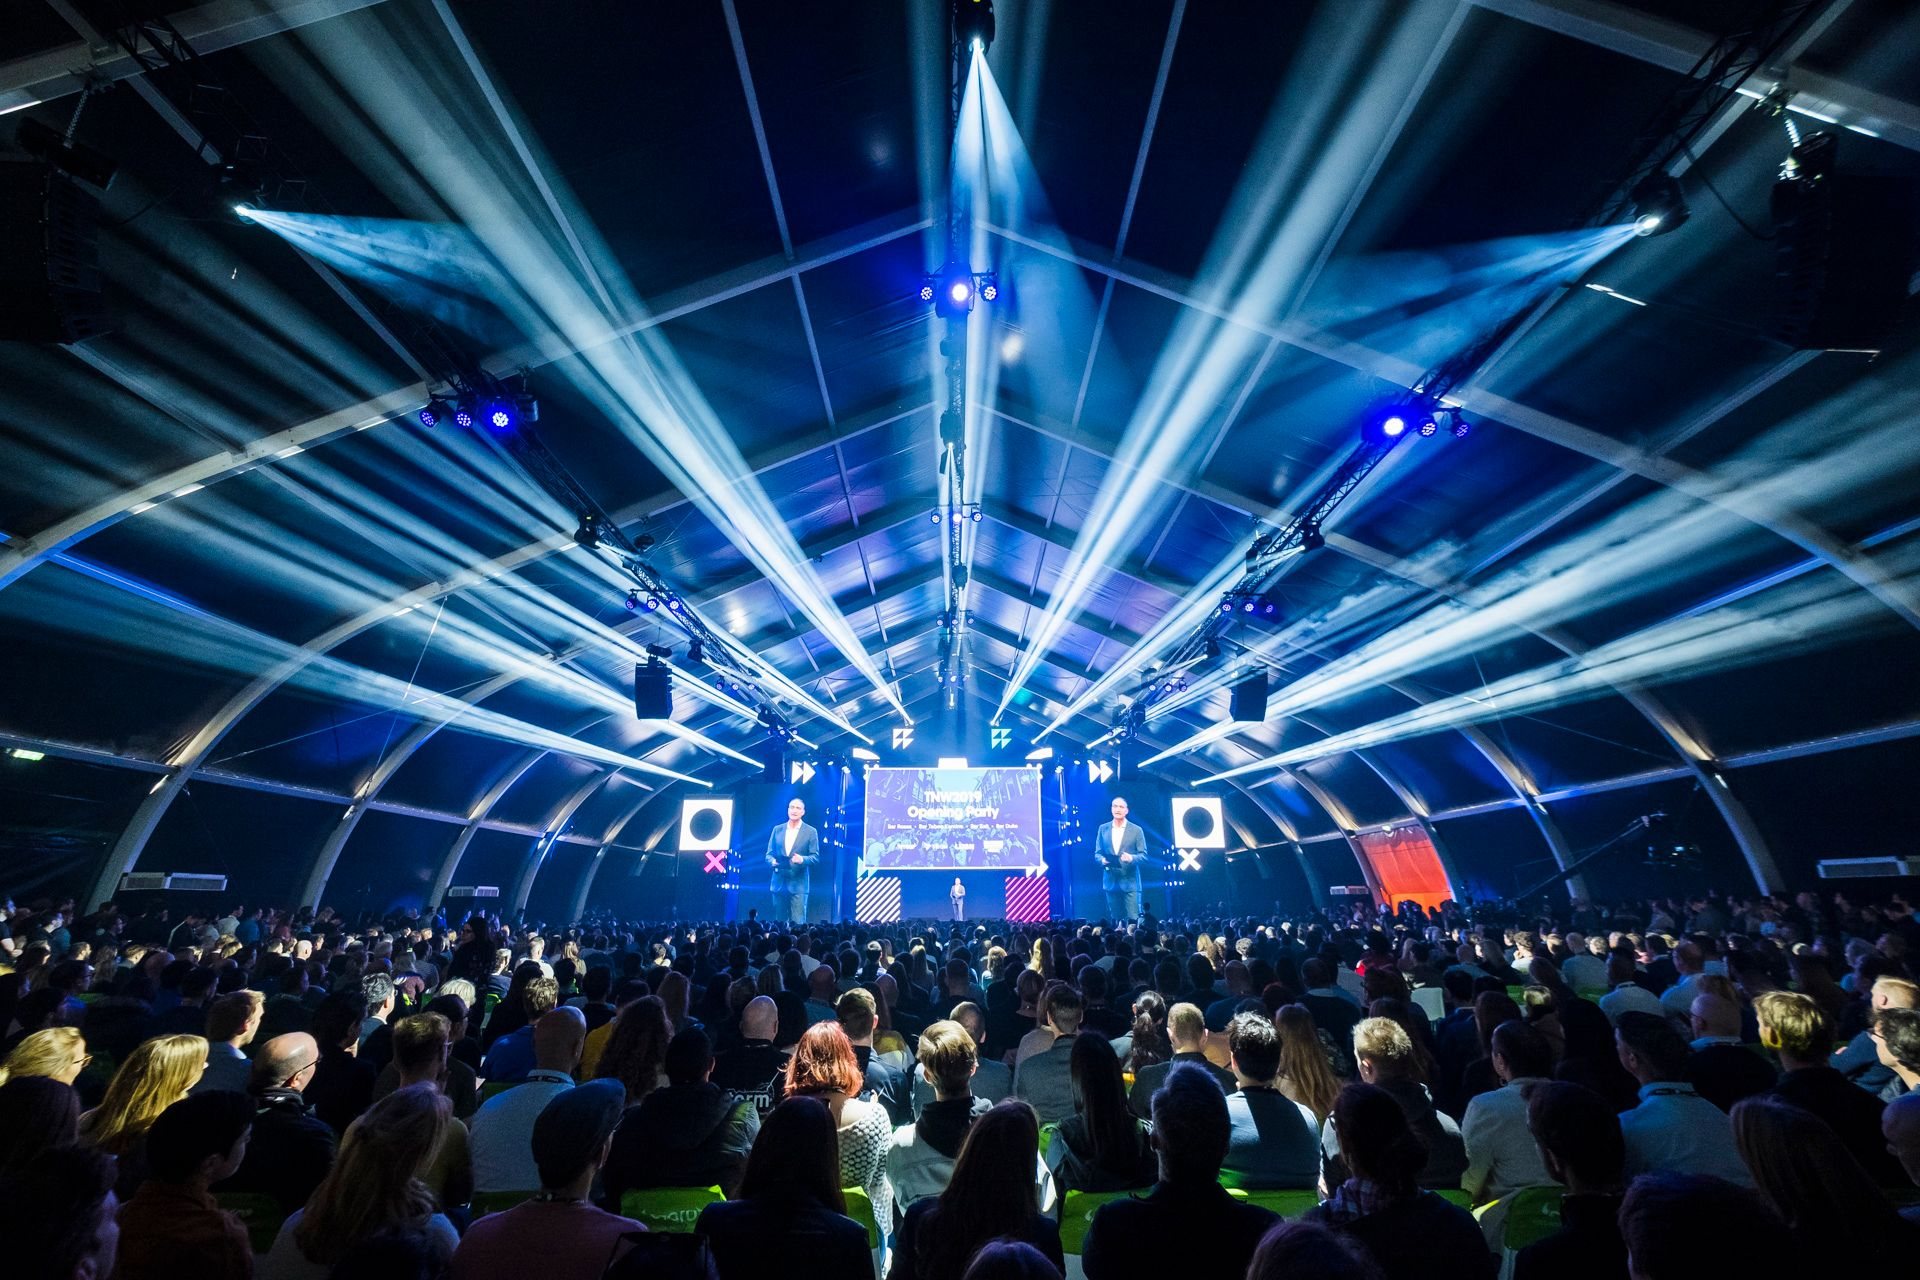 Top 50 Startup Events & Conferences in 2021